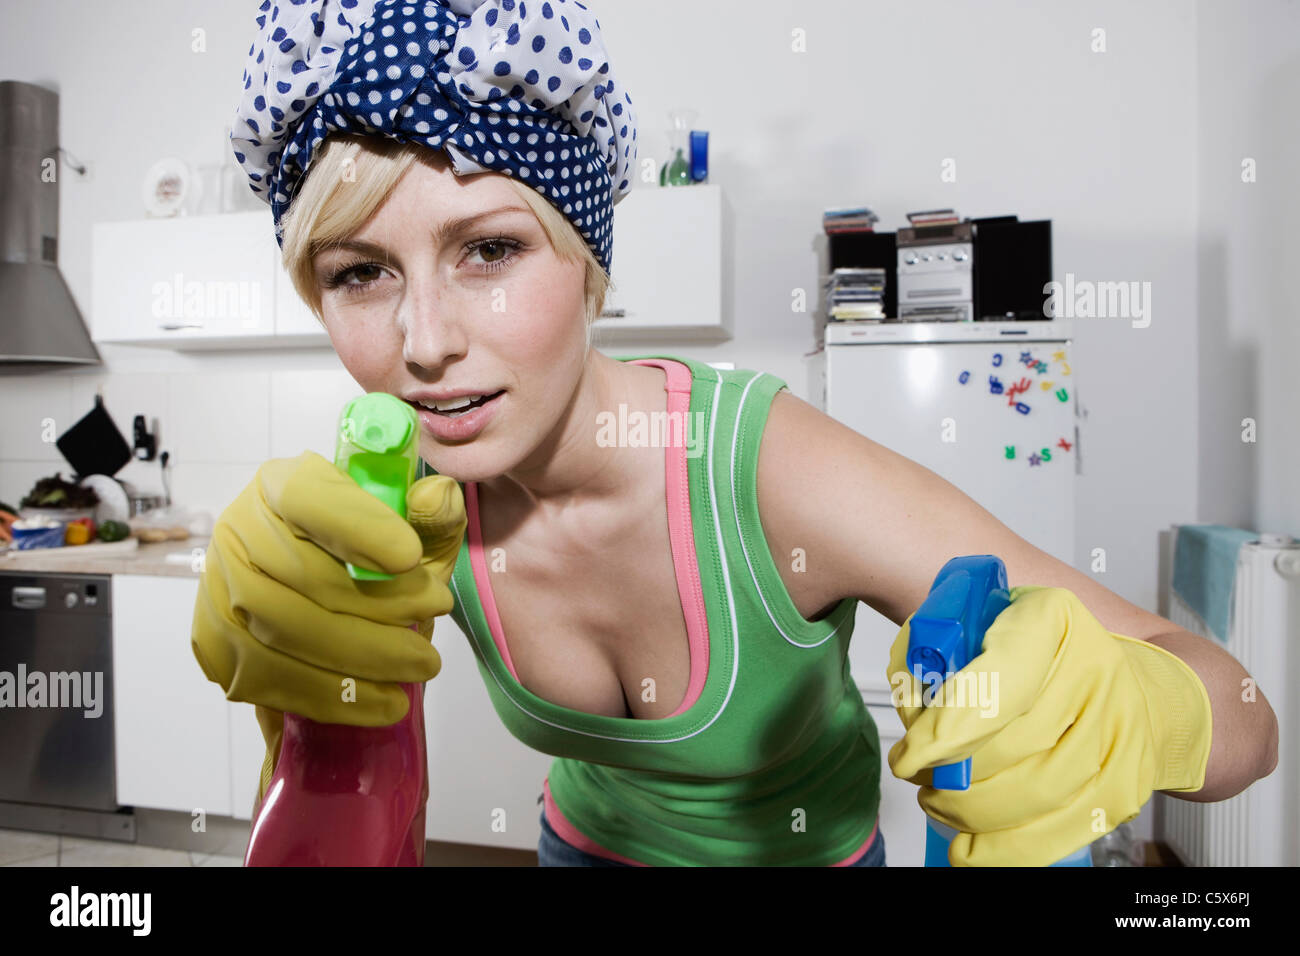 Germany, Berlin, Young woman in kitchen holding spray bottles, portrait, close-up - Stock Image